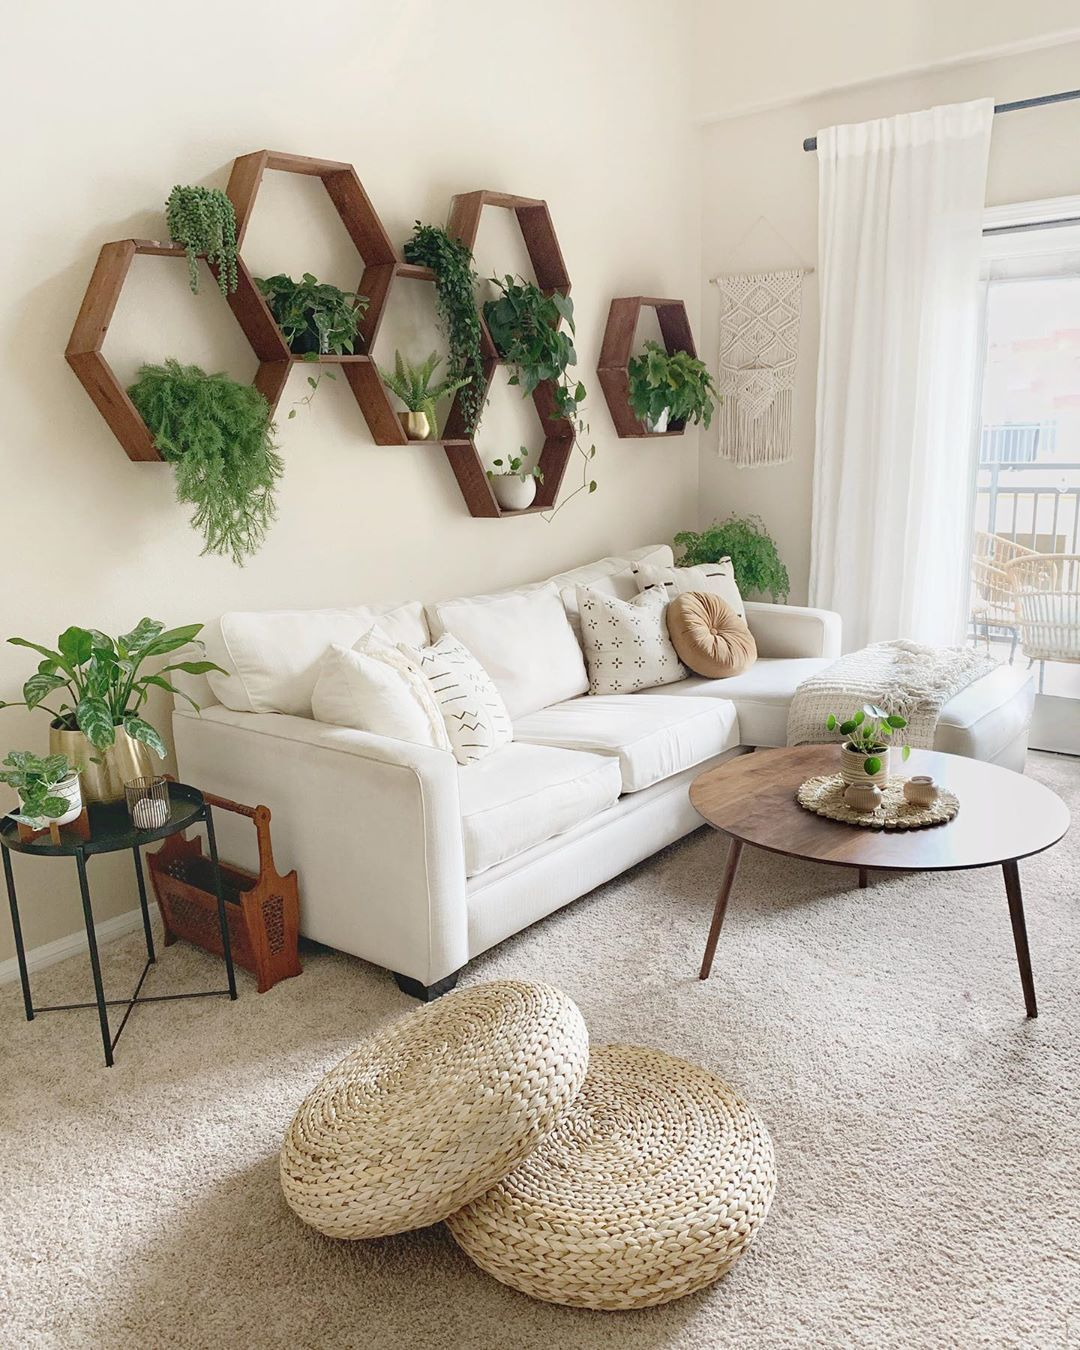 Find out Where to Buy Every Single Thing in This PlantFilled Bohemian Living Room  Hunker